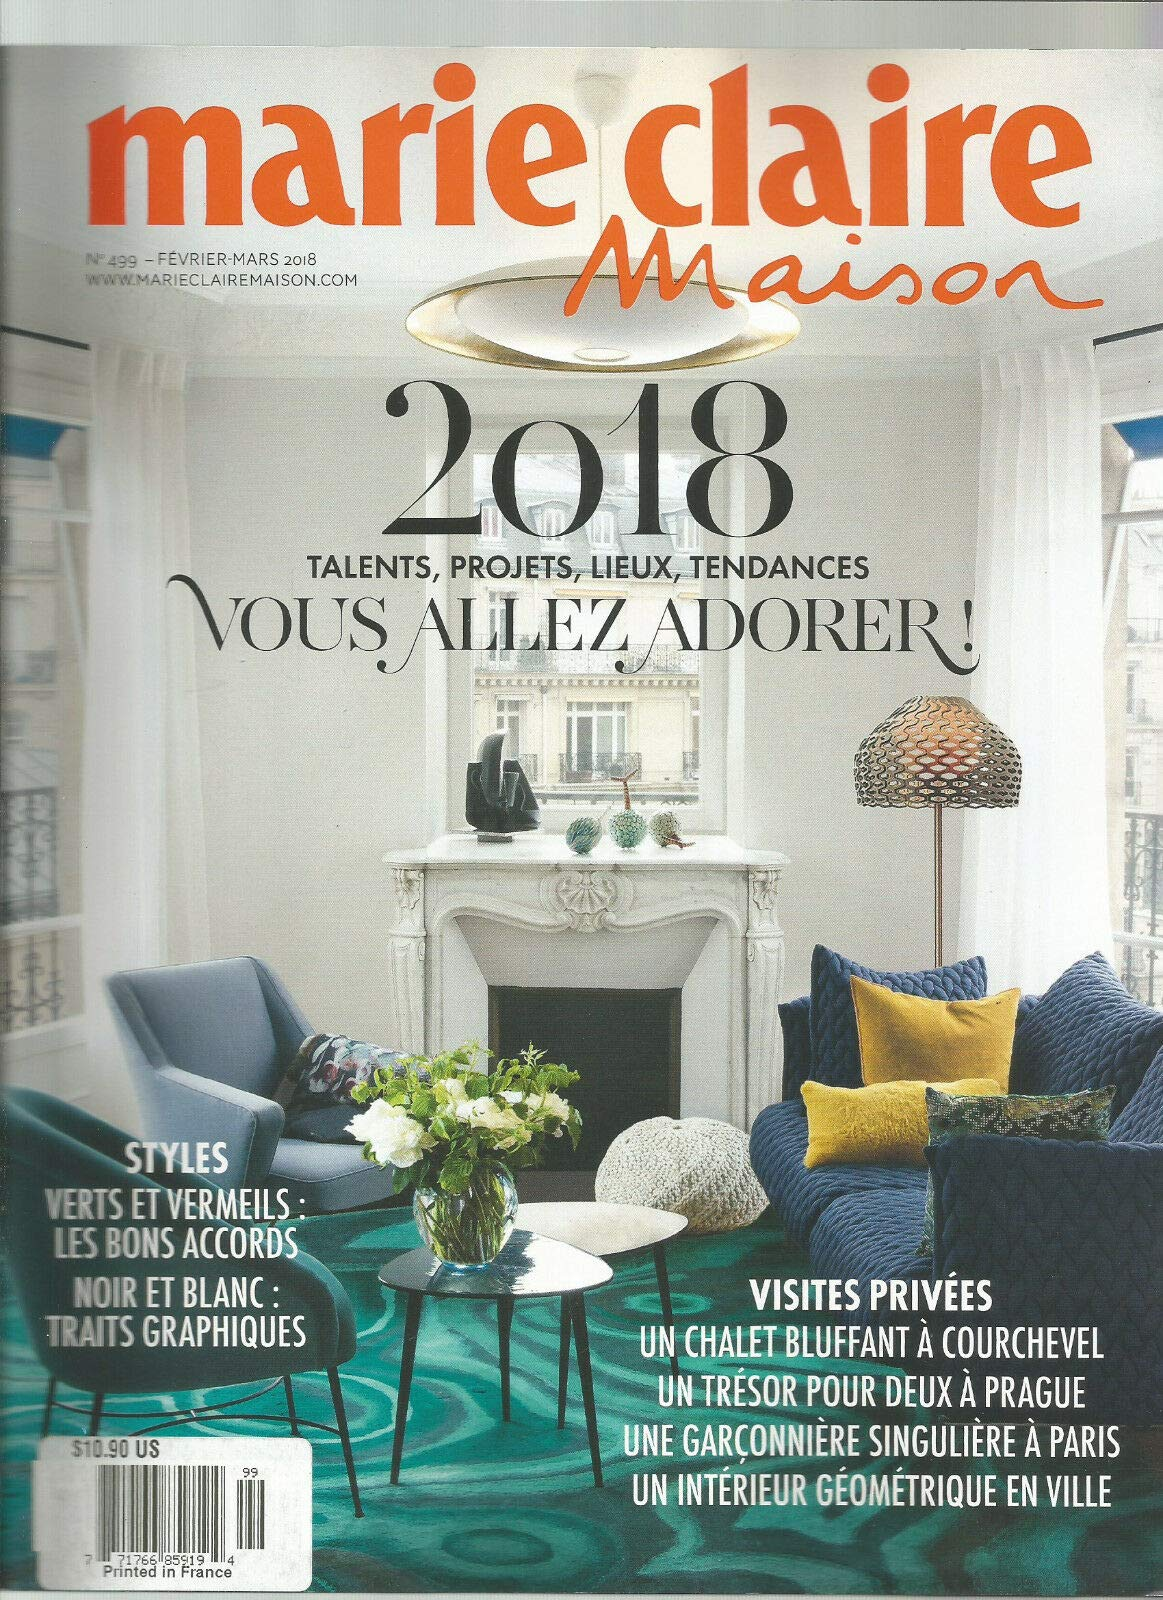 MARIE CLAIRE MAISON MAGAZINE FRANCE NO 8 FEBRUARY/MARCH 8